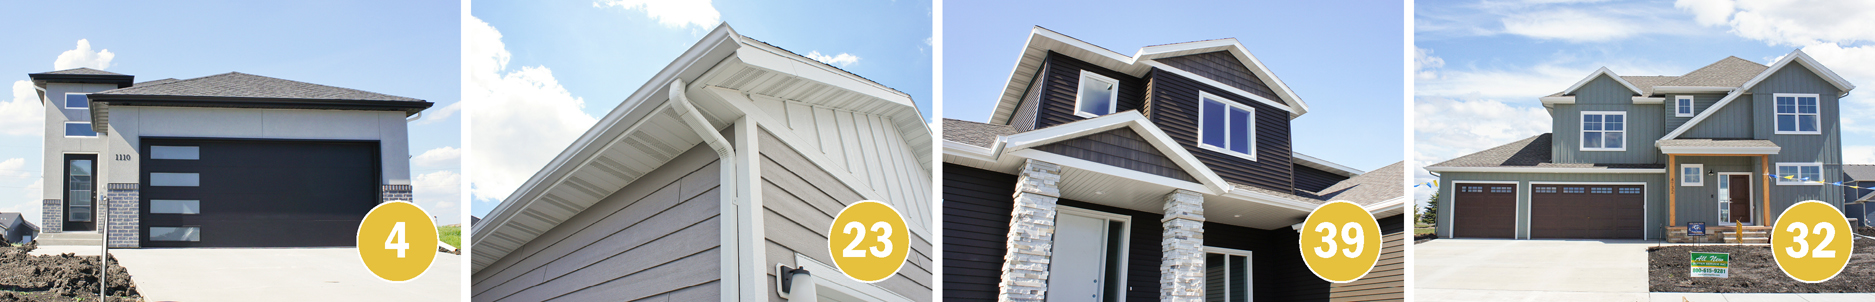 Collage of Several Homes Featuring Gutters from All New Gutter (4 images)